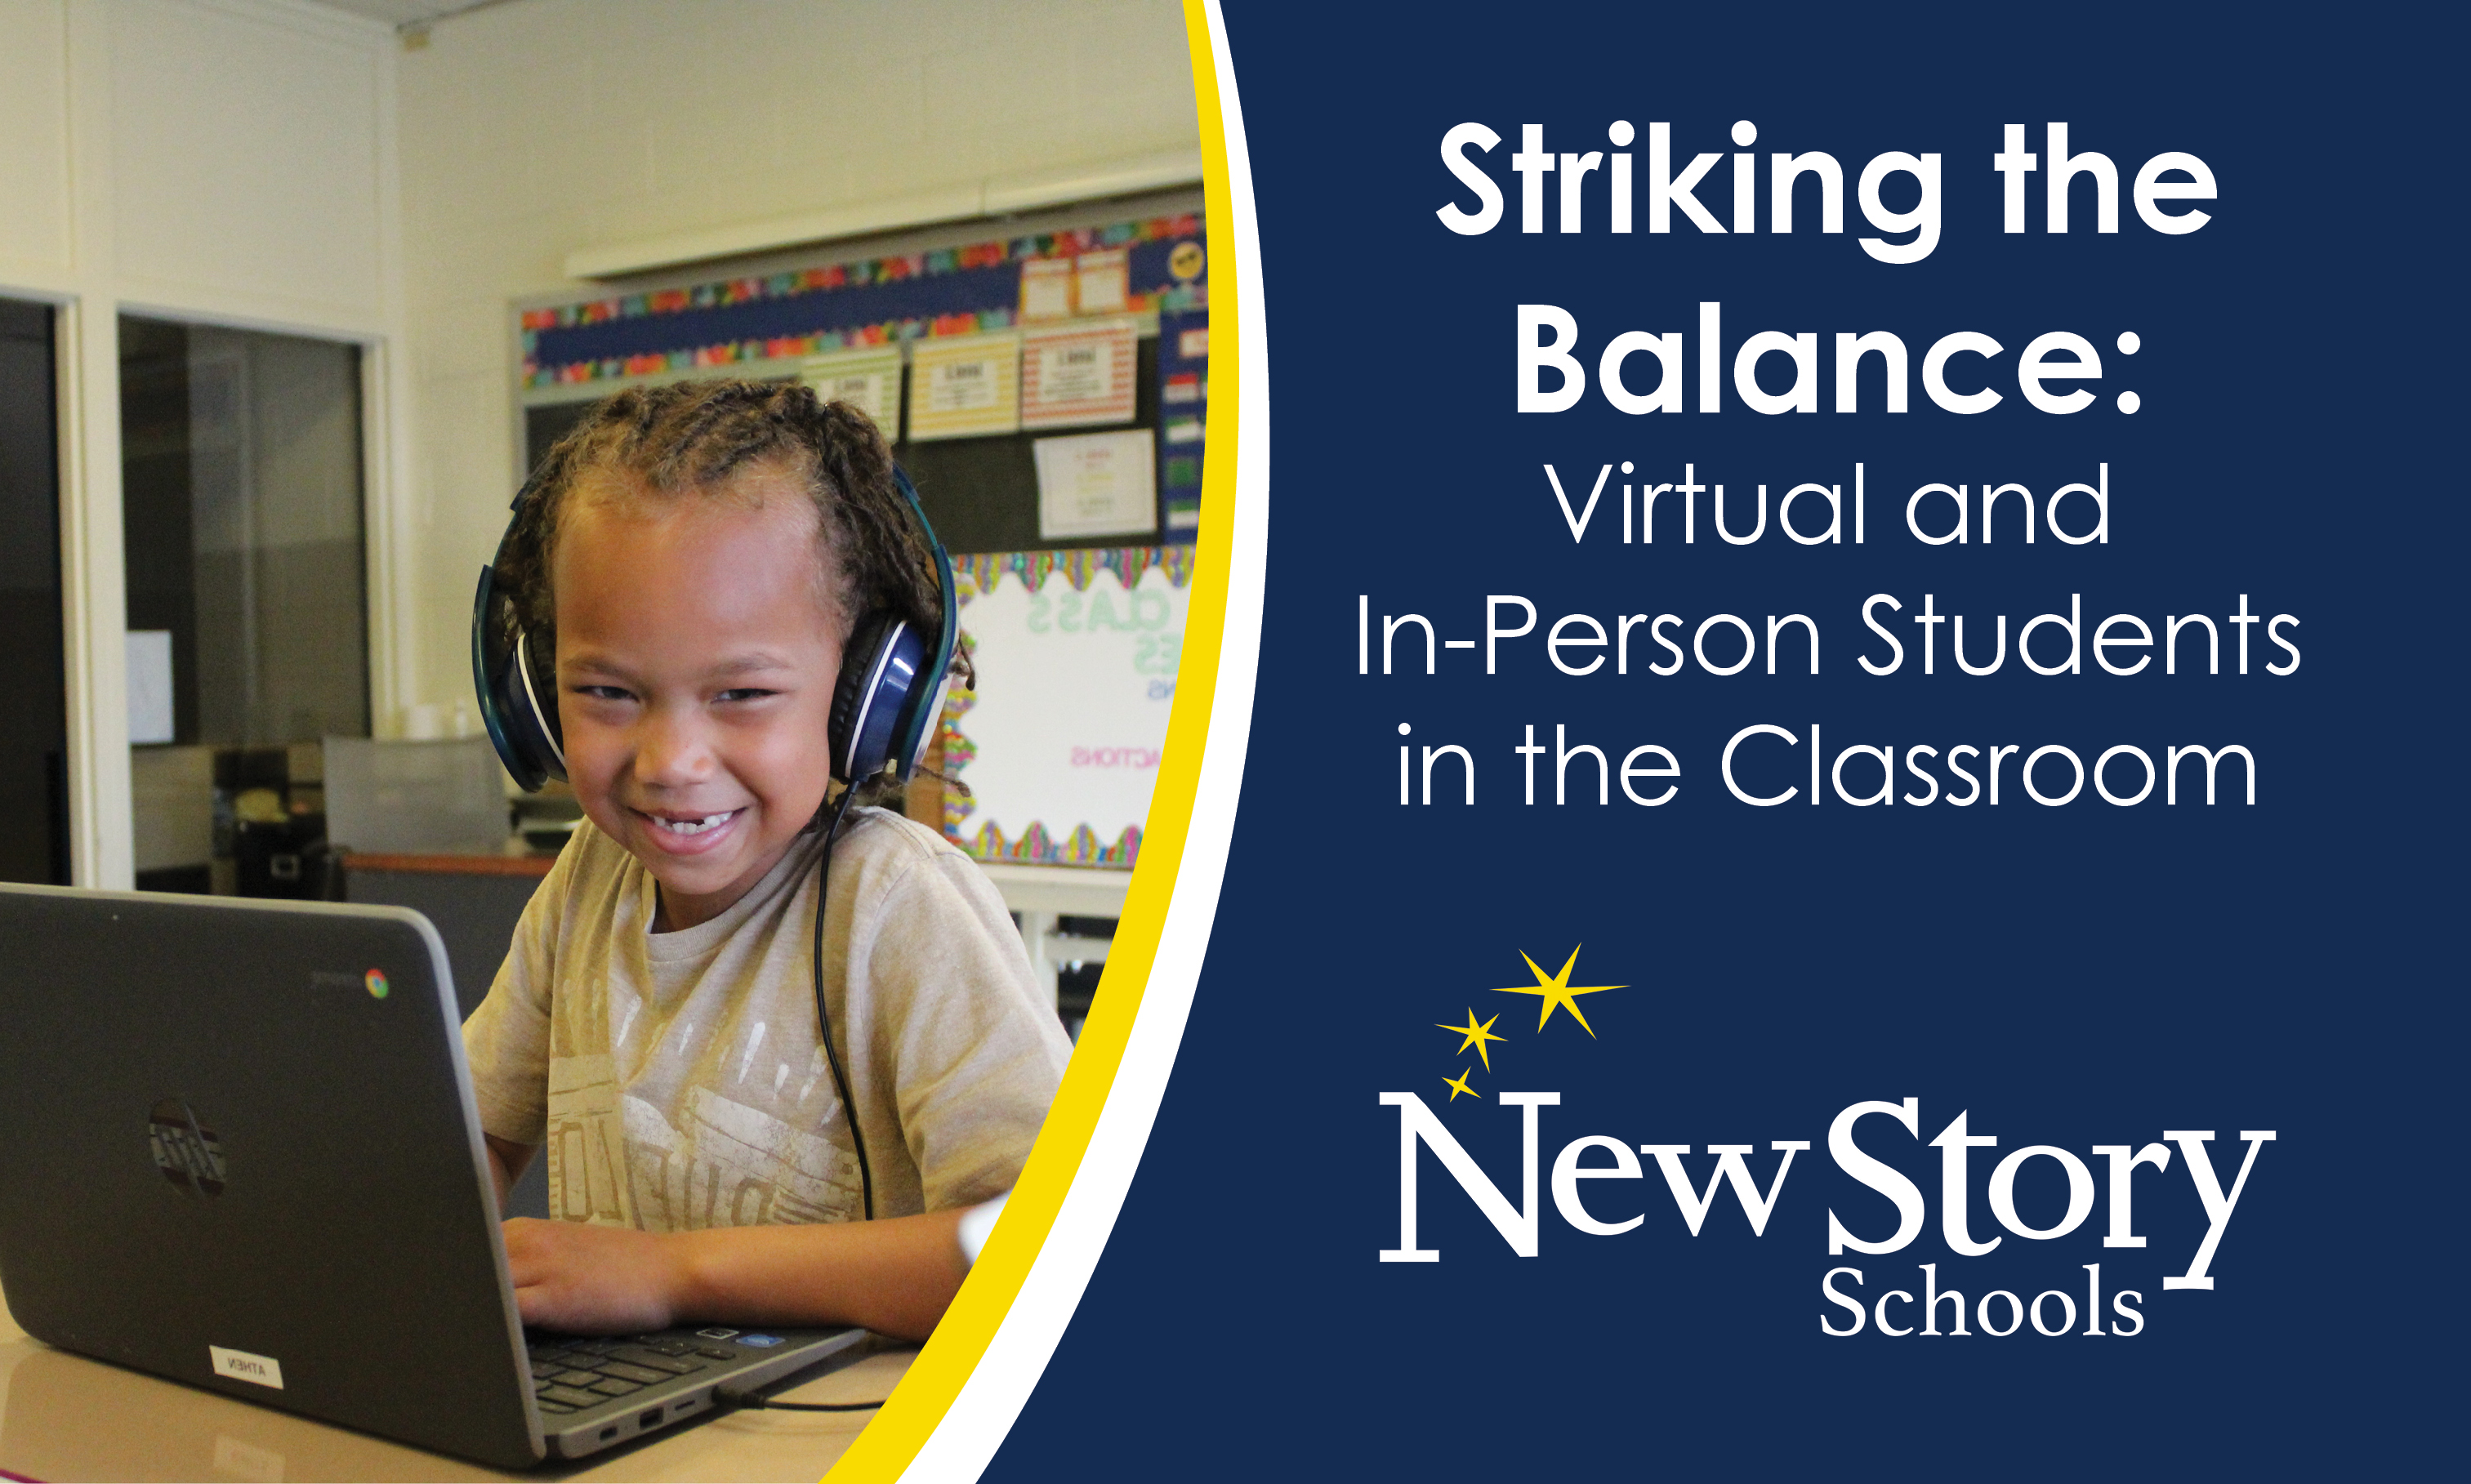 Student with headphones on and working at a laptop in the classroom. She is smiling. Title: Striking the Balance: Virtual and In-Person Students in the Classroom